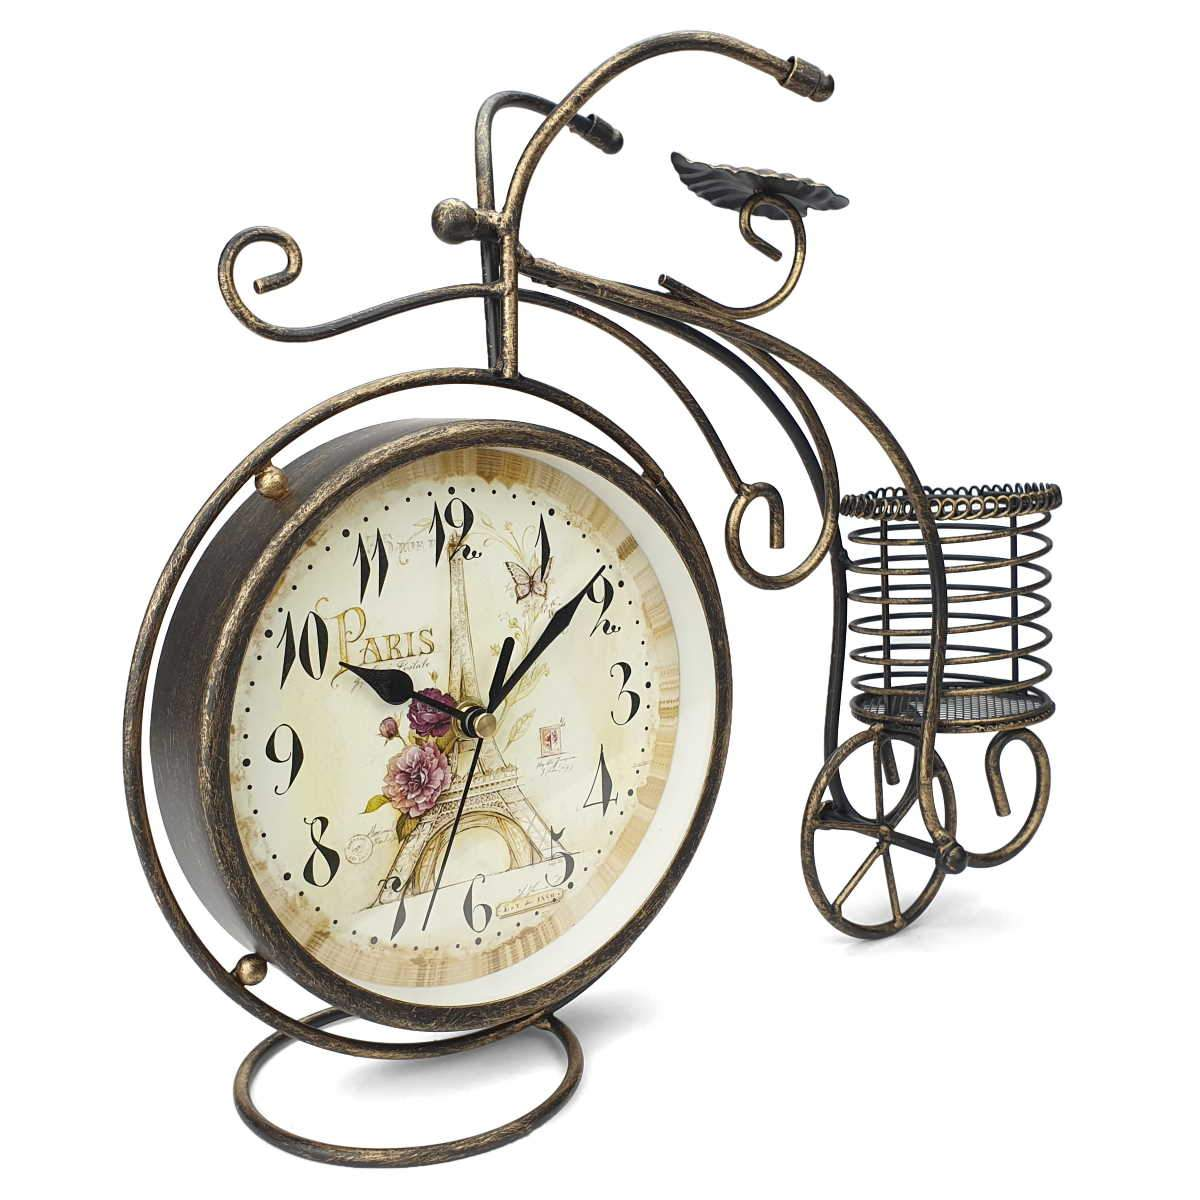 Victory Curtis Artistic Metal Bicycle Desk Clock Distressed Gold 32cm TAA 105B 1